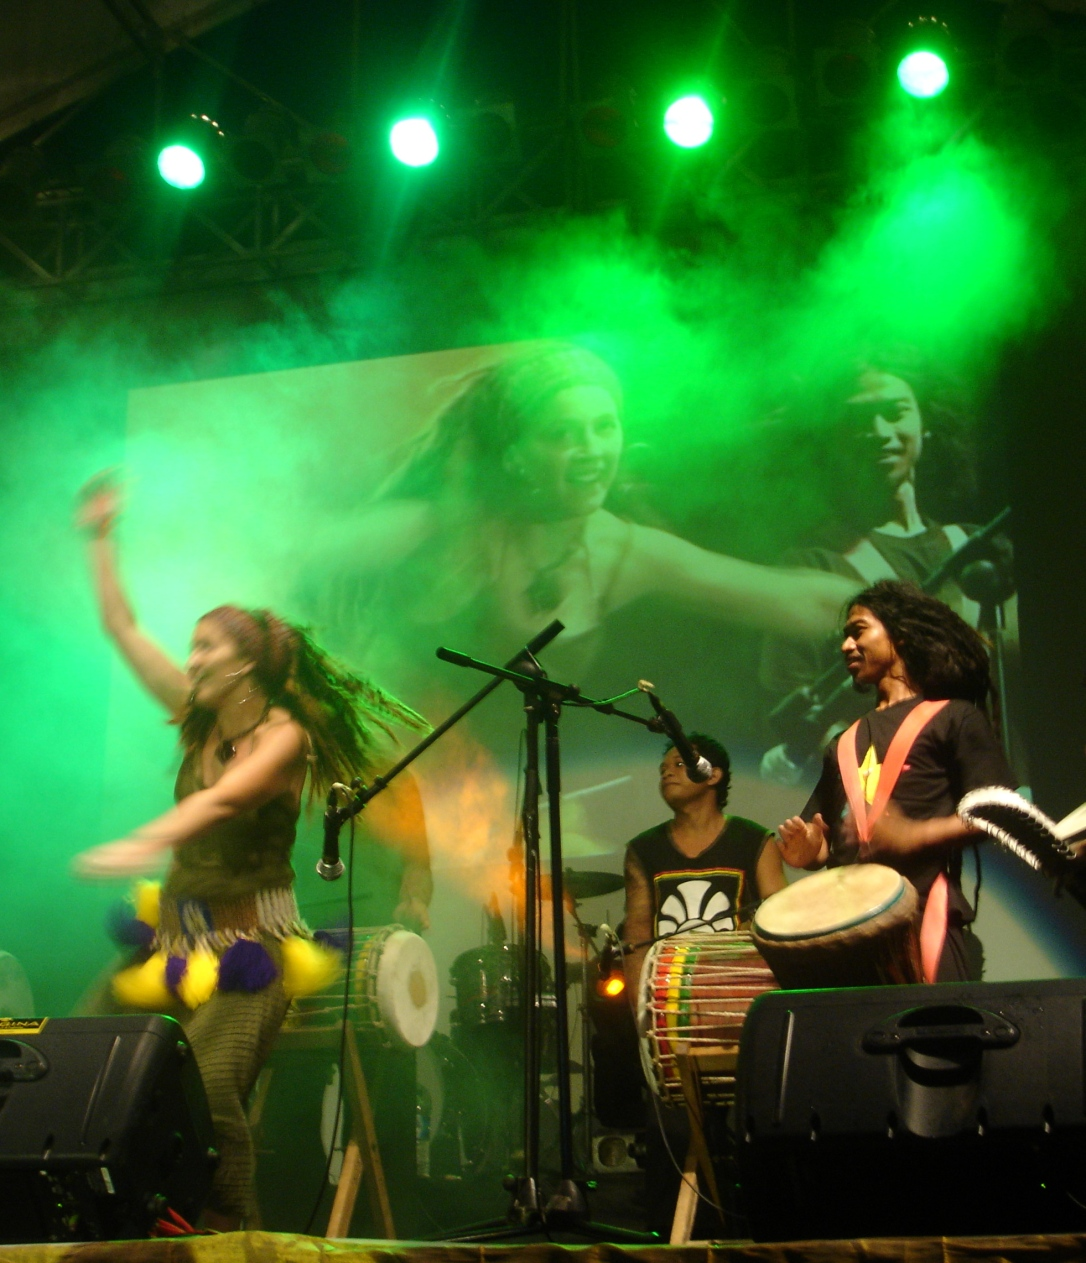 1. Sarah and Catur performing at Bali Spirit Festival 2010.JPG